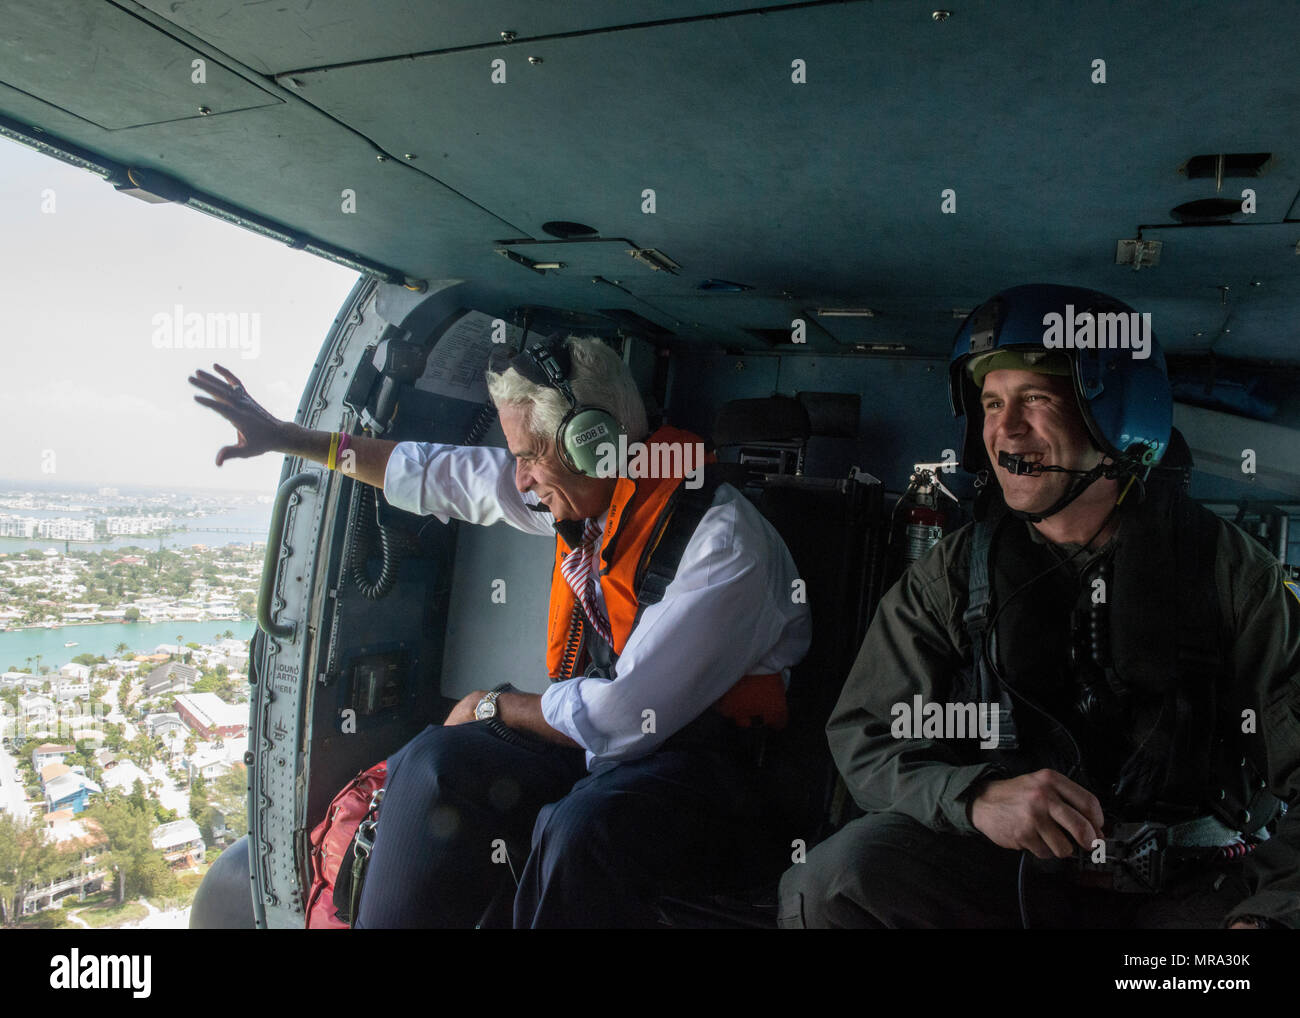 Congressman Charlie Crist, U.S. Representative for Florida's 13th District, waves to beachgoers Tuesday, May 30, 2017, alongside Petty Officer 3rd Class Justin Kuchar, crew member at Air Station Clearwater, during an aerial assessment of erosion along Pinellas County, Florida's coast.  U.S. Coast Guard by Petty Officer 1st Class Michael De Nyse - Stock Image